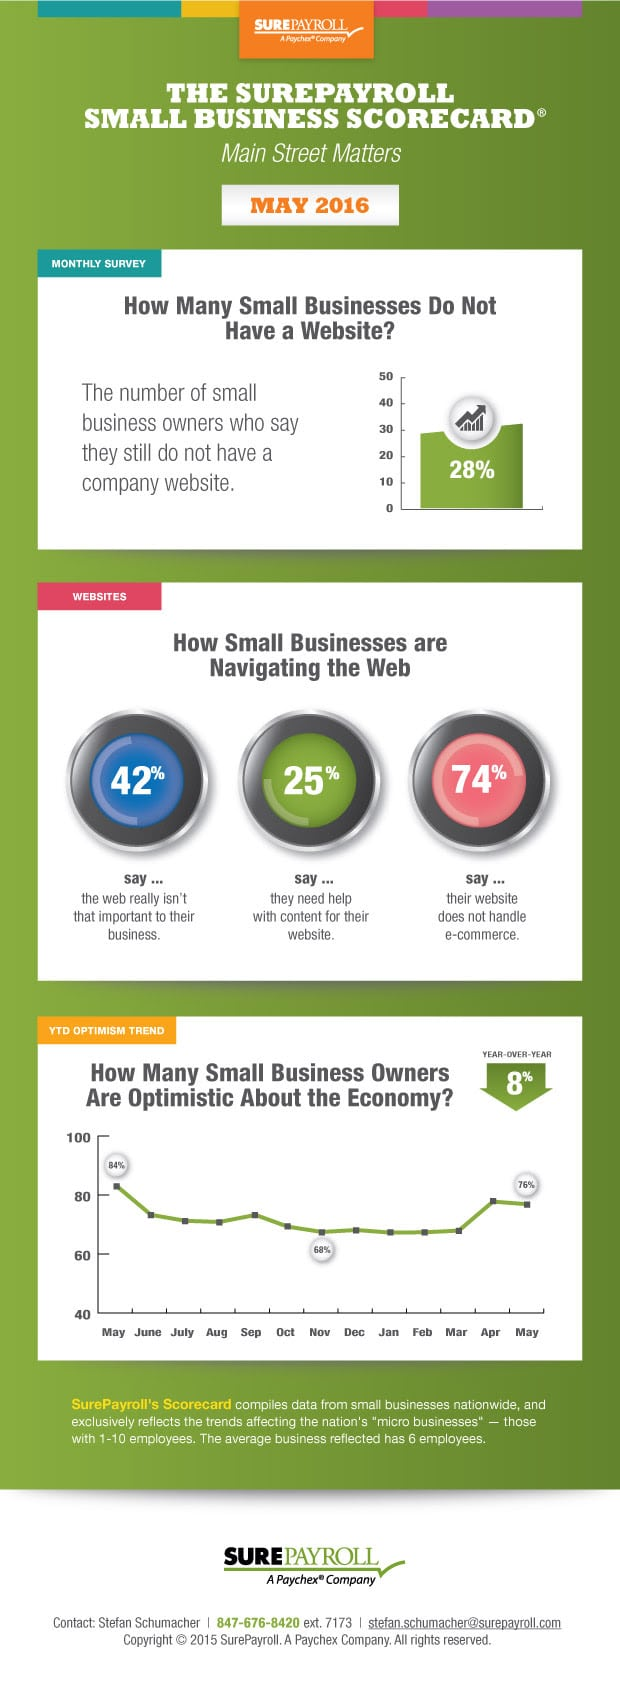 Photo of The SurePayroll Small Business Scorecard [INFOGRAPHIC]